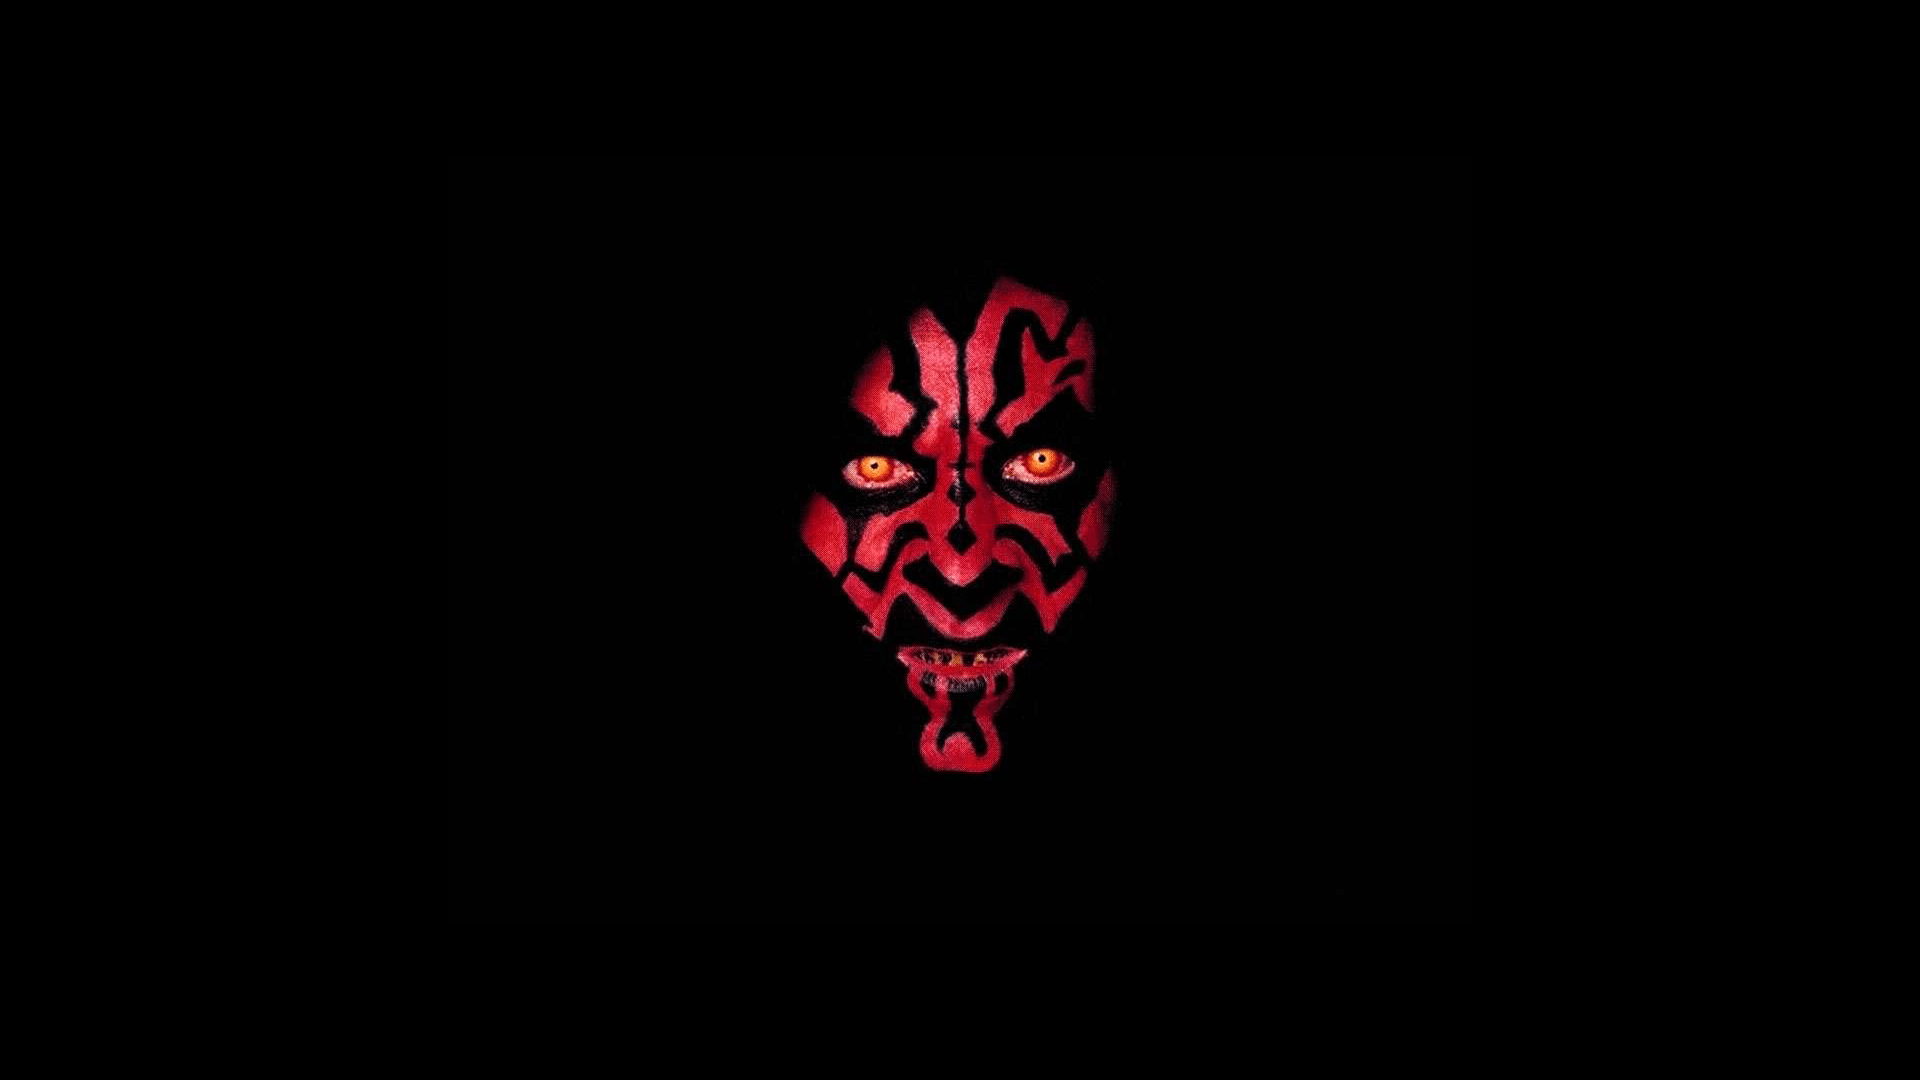 Star Wars movie wallpapers in HD